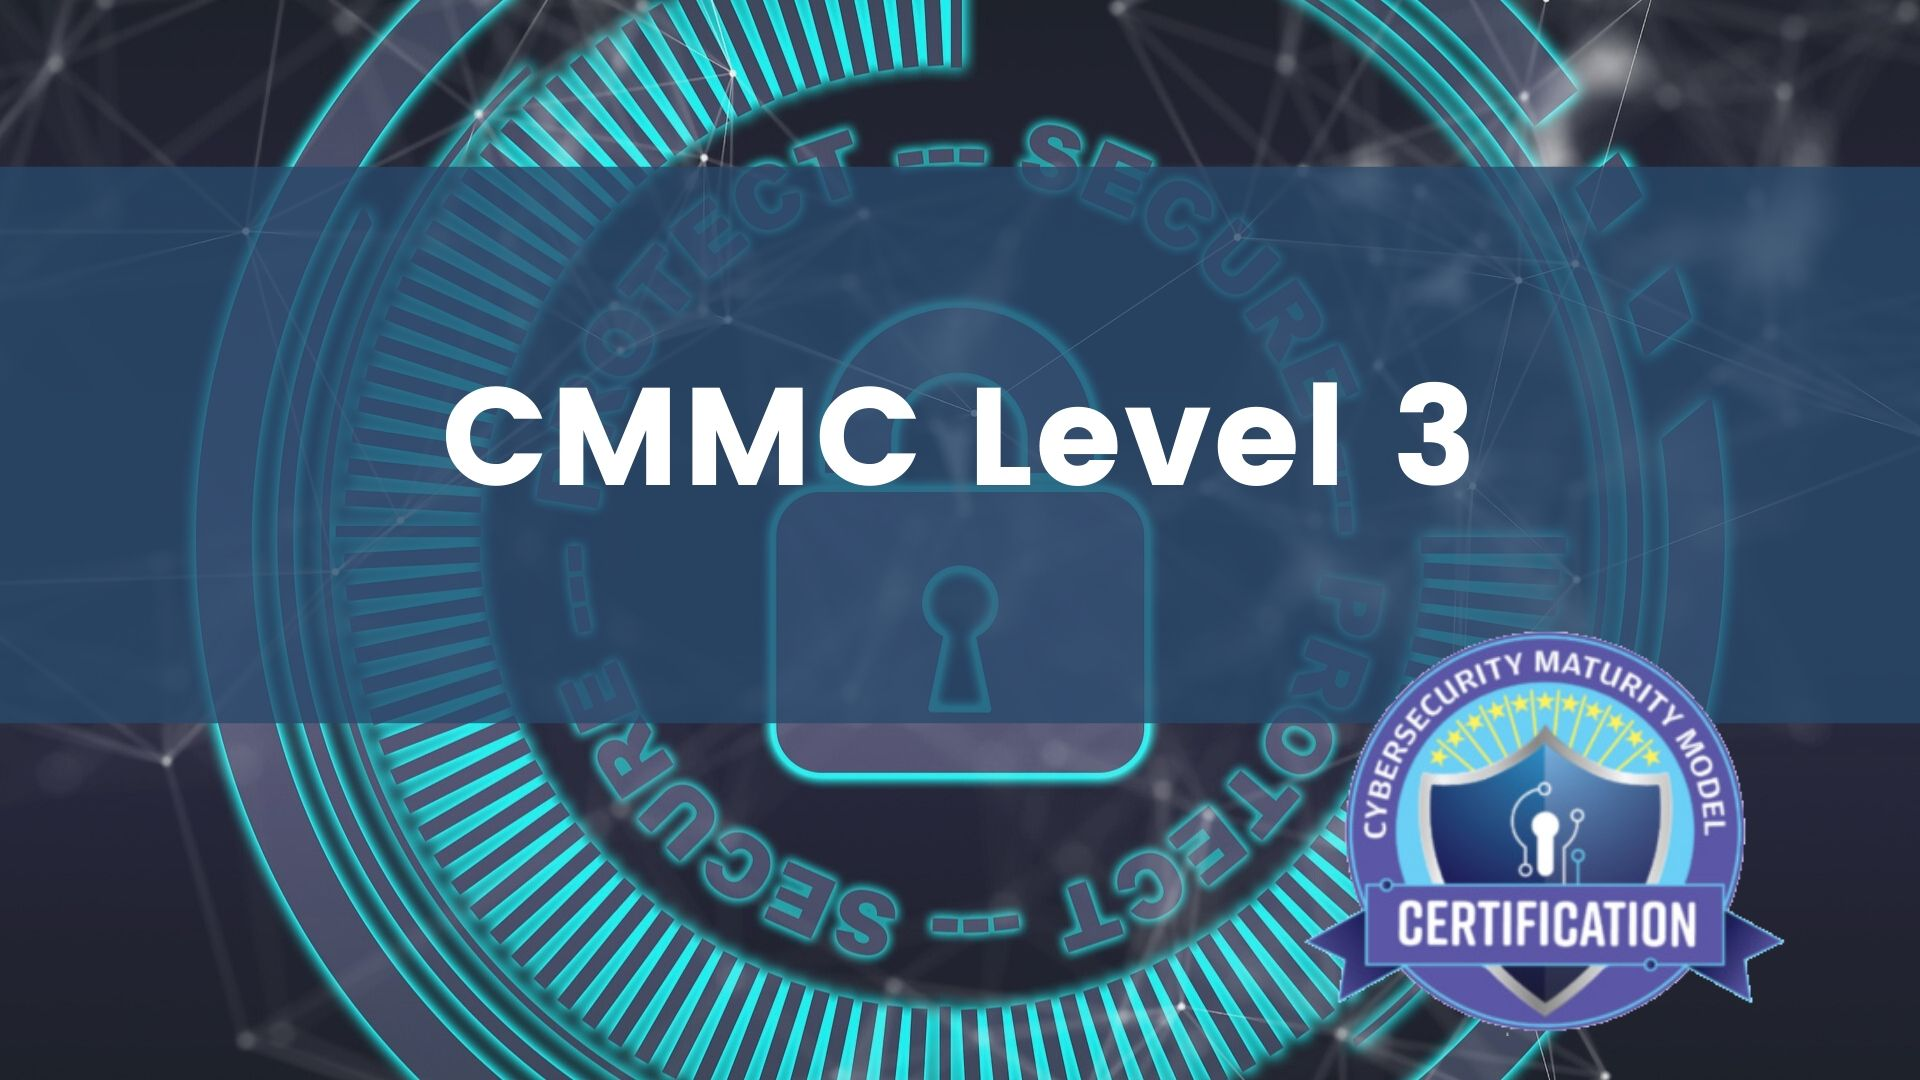 CMMC Level 3 course image